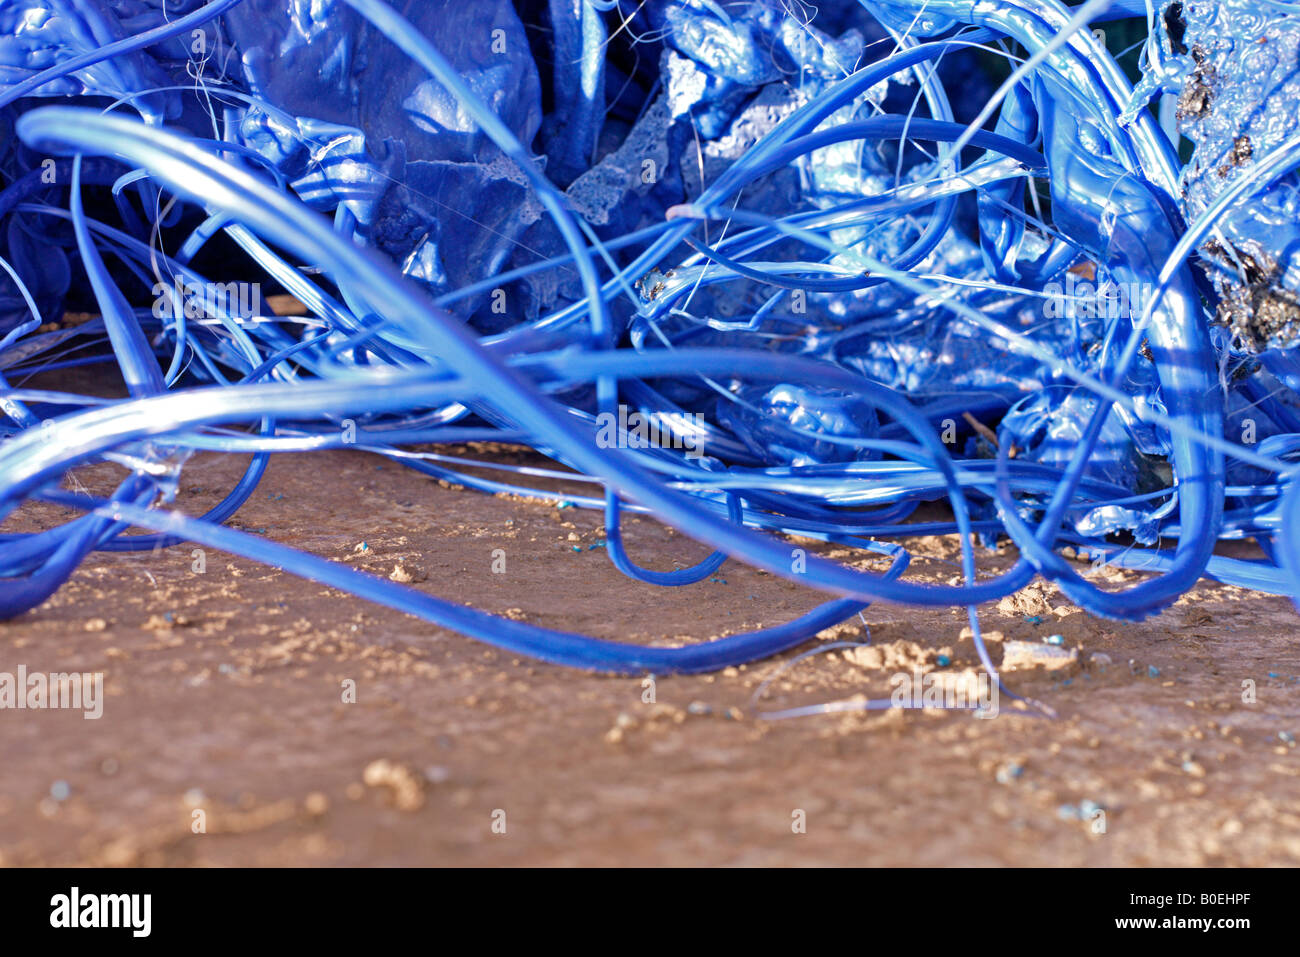 strands of plastic waste - Stock Image